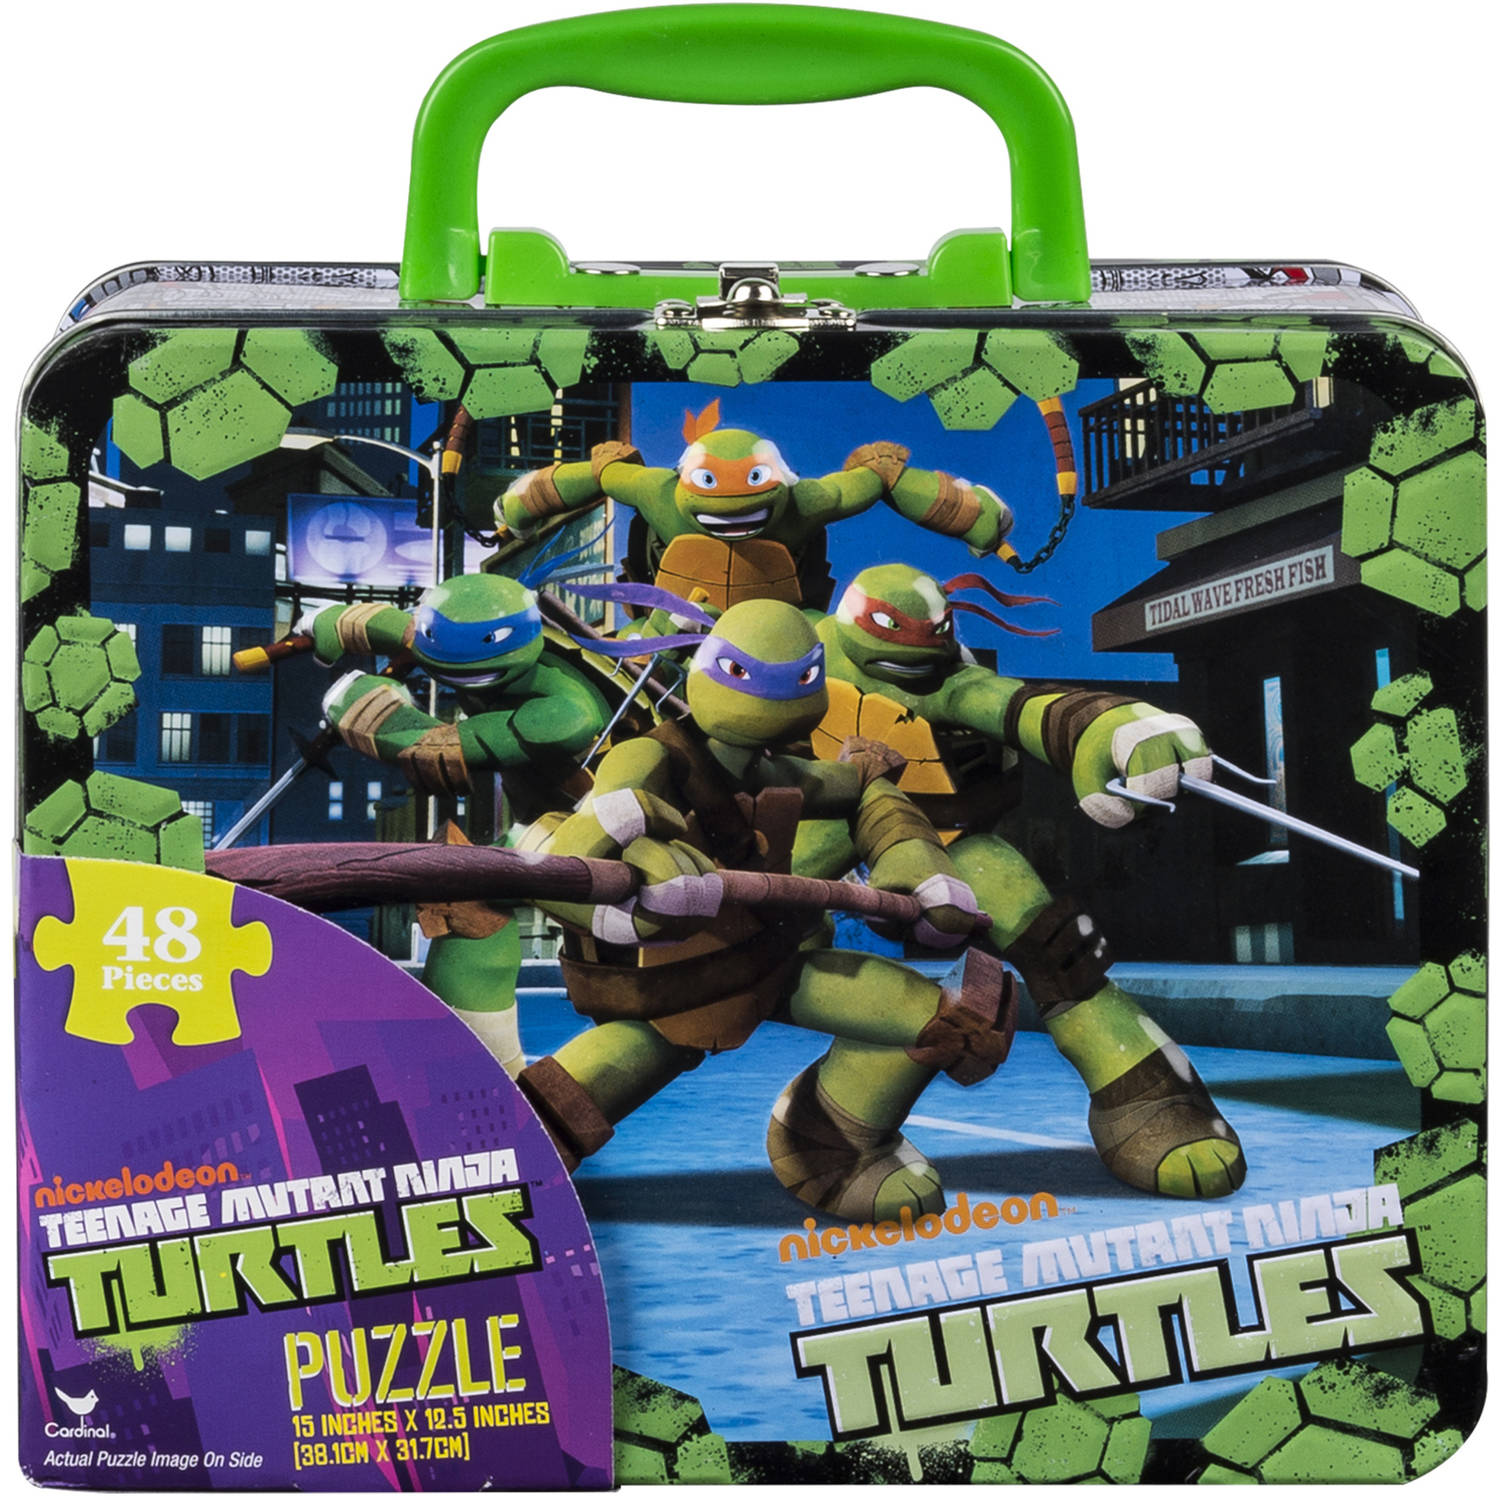 Nickelodeon Teenage Mutant Ninja Turtles Super 3D Puzzle, 150 pcs